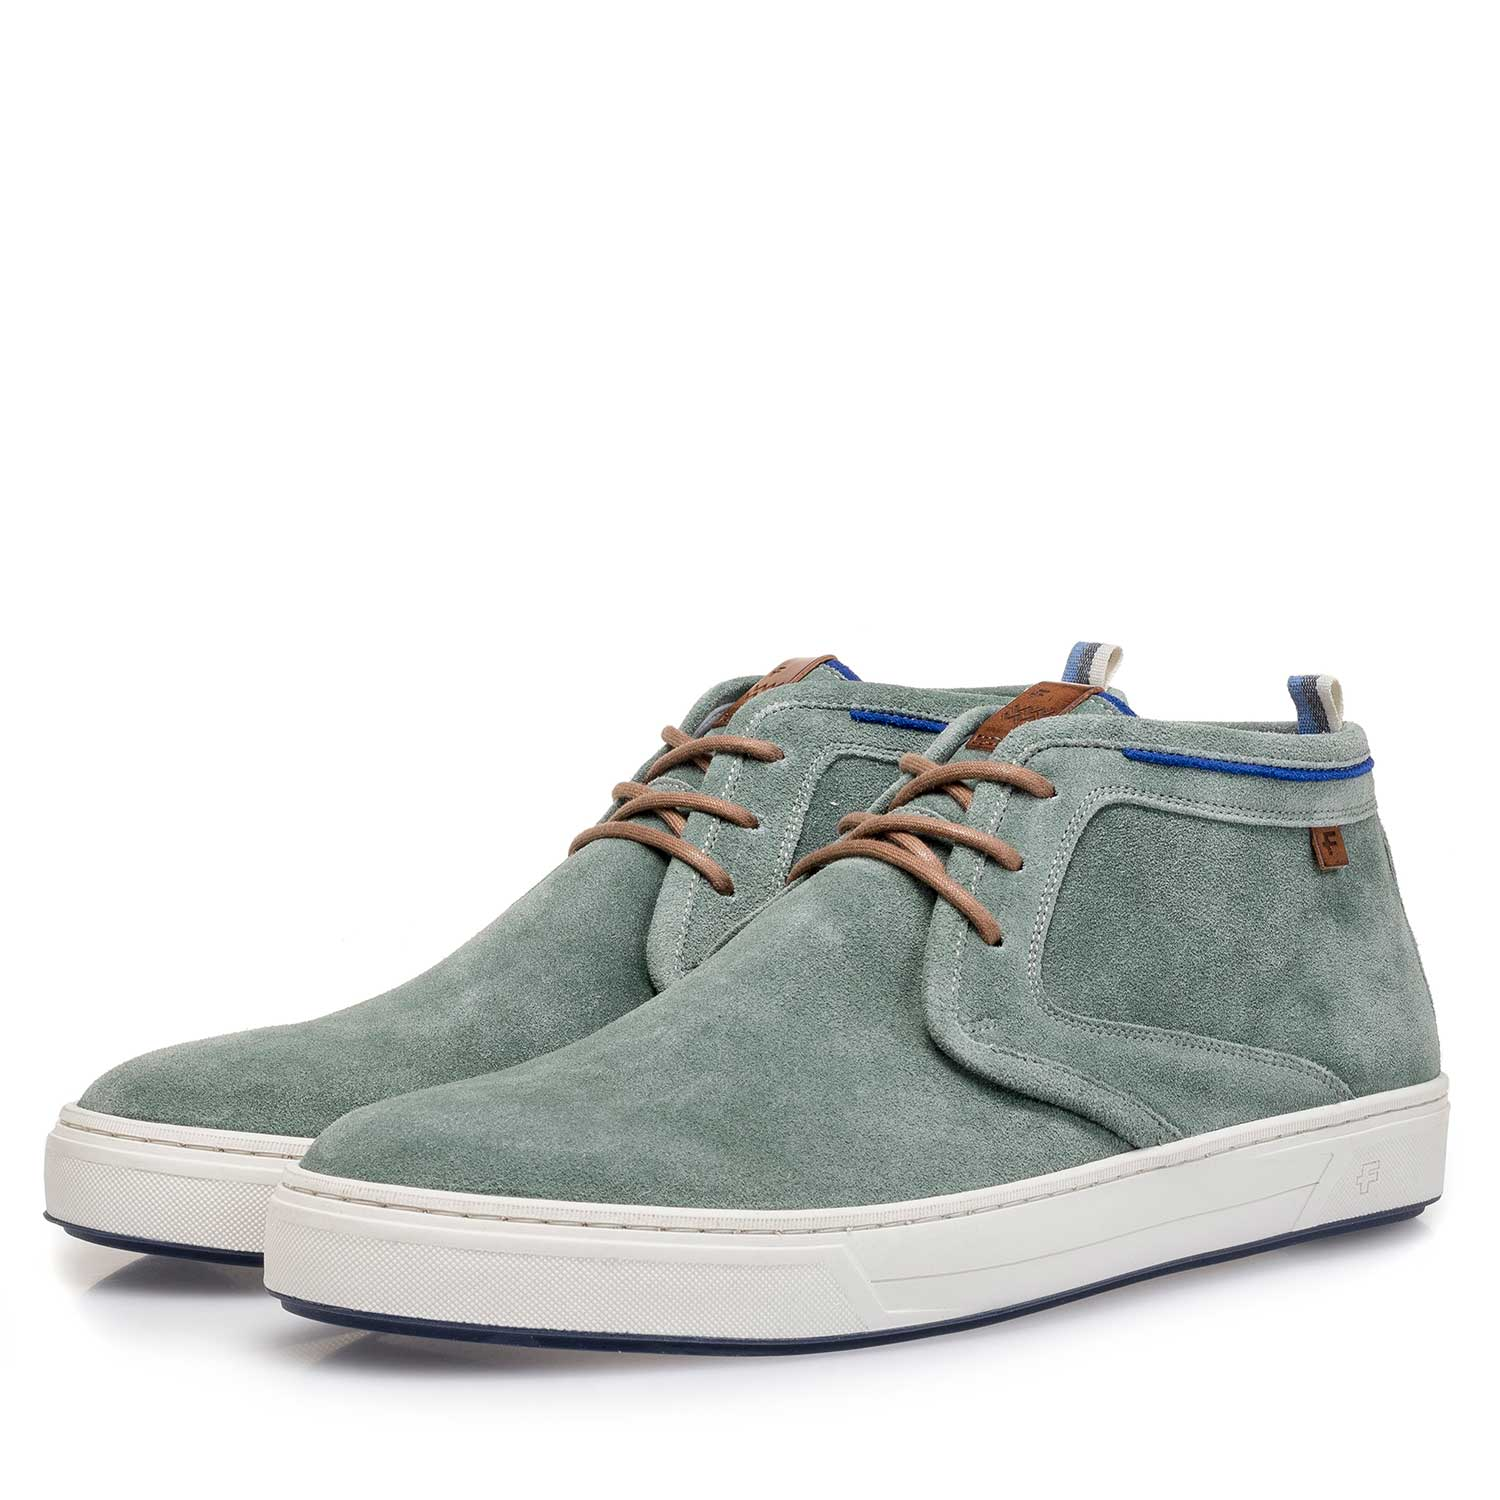 10466/03 - Pale green washed suede leather lace shoe